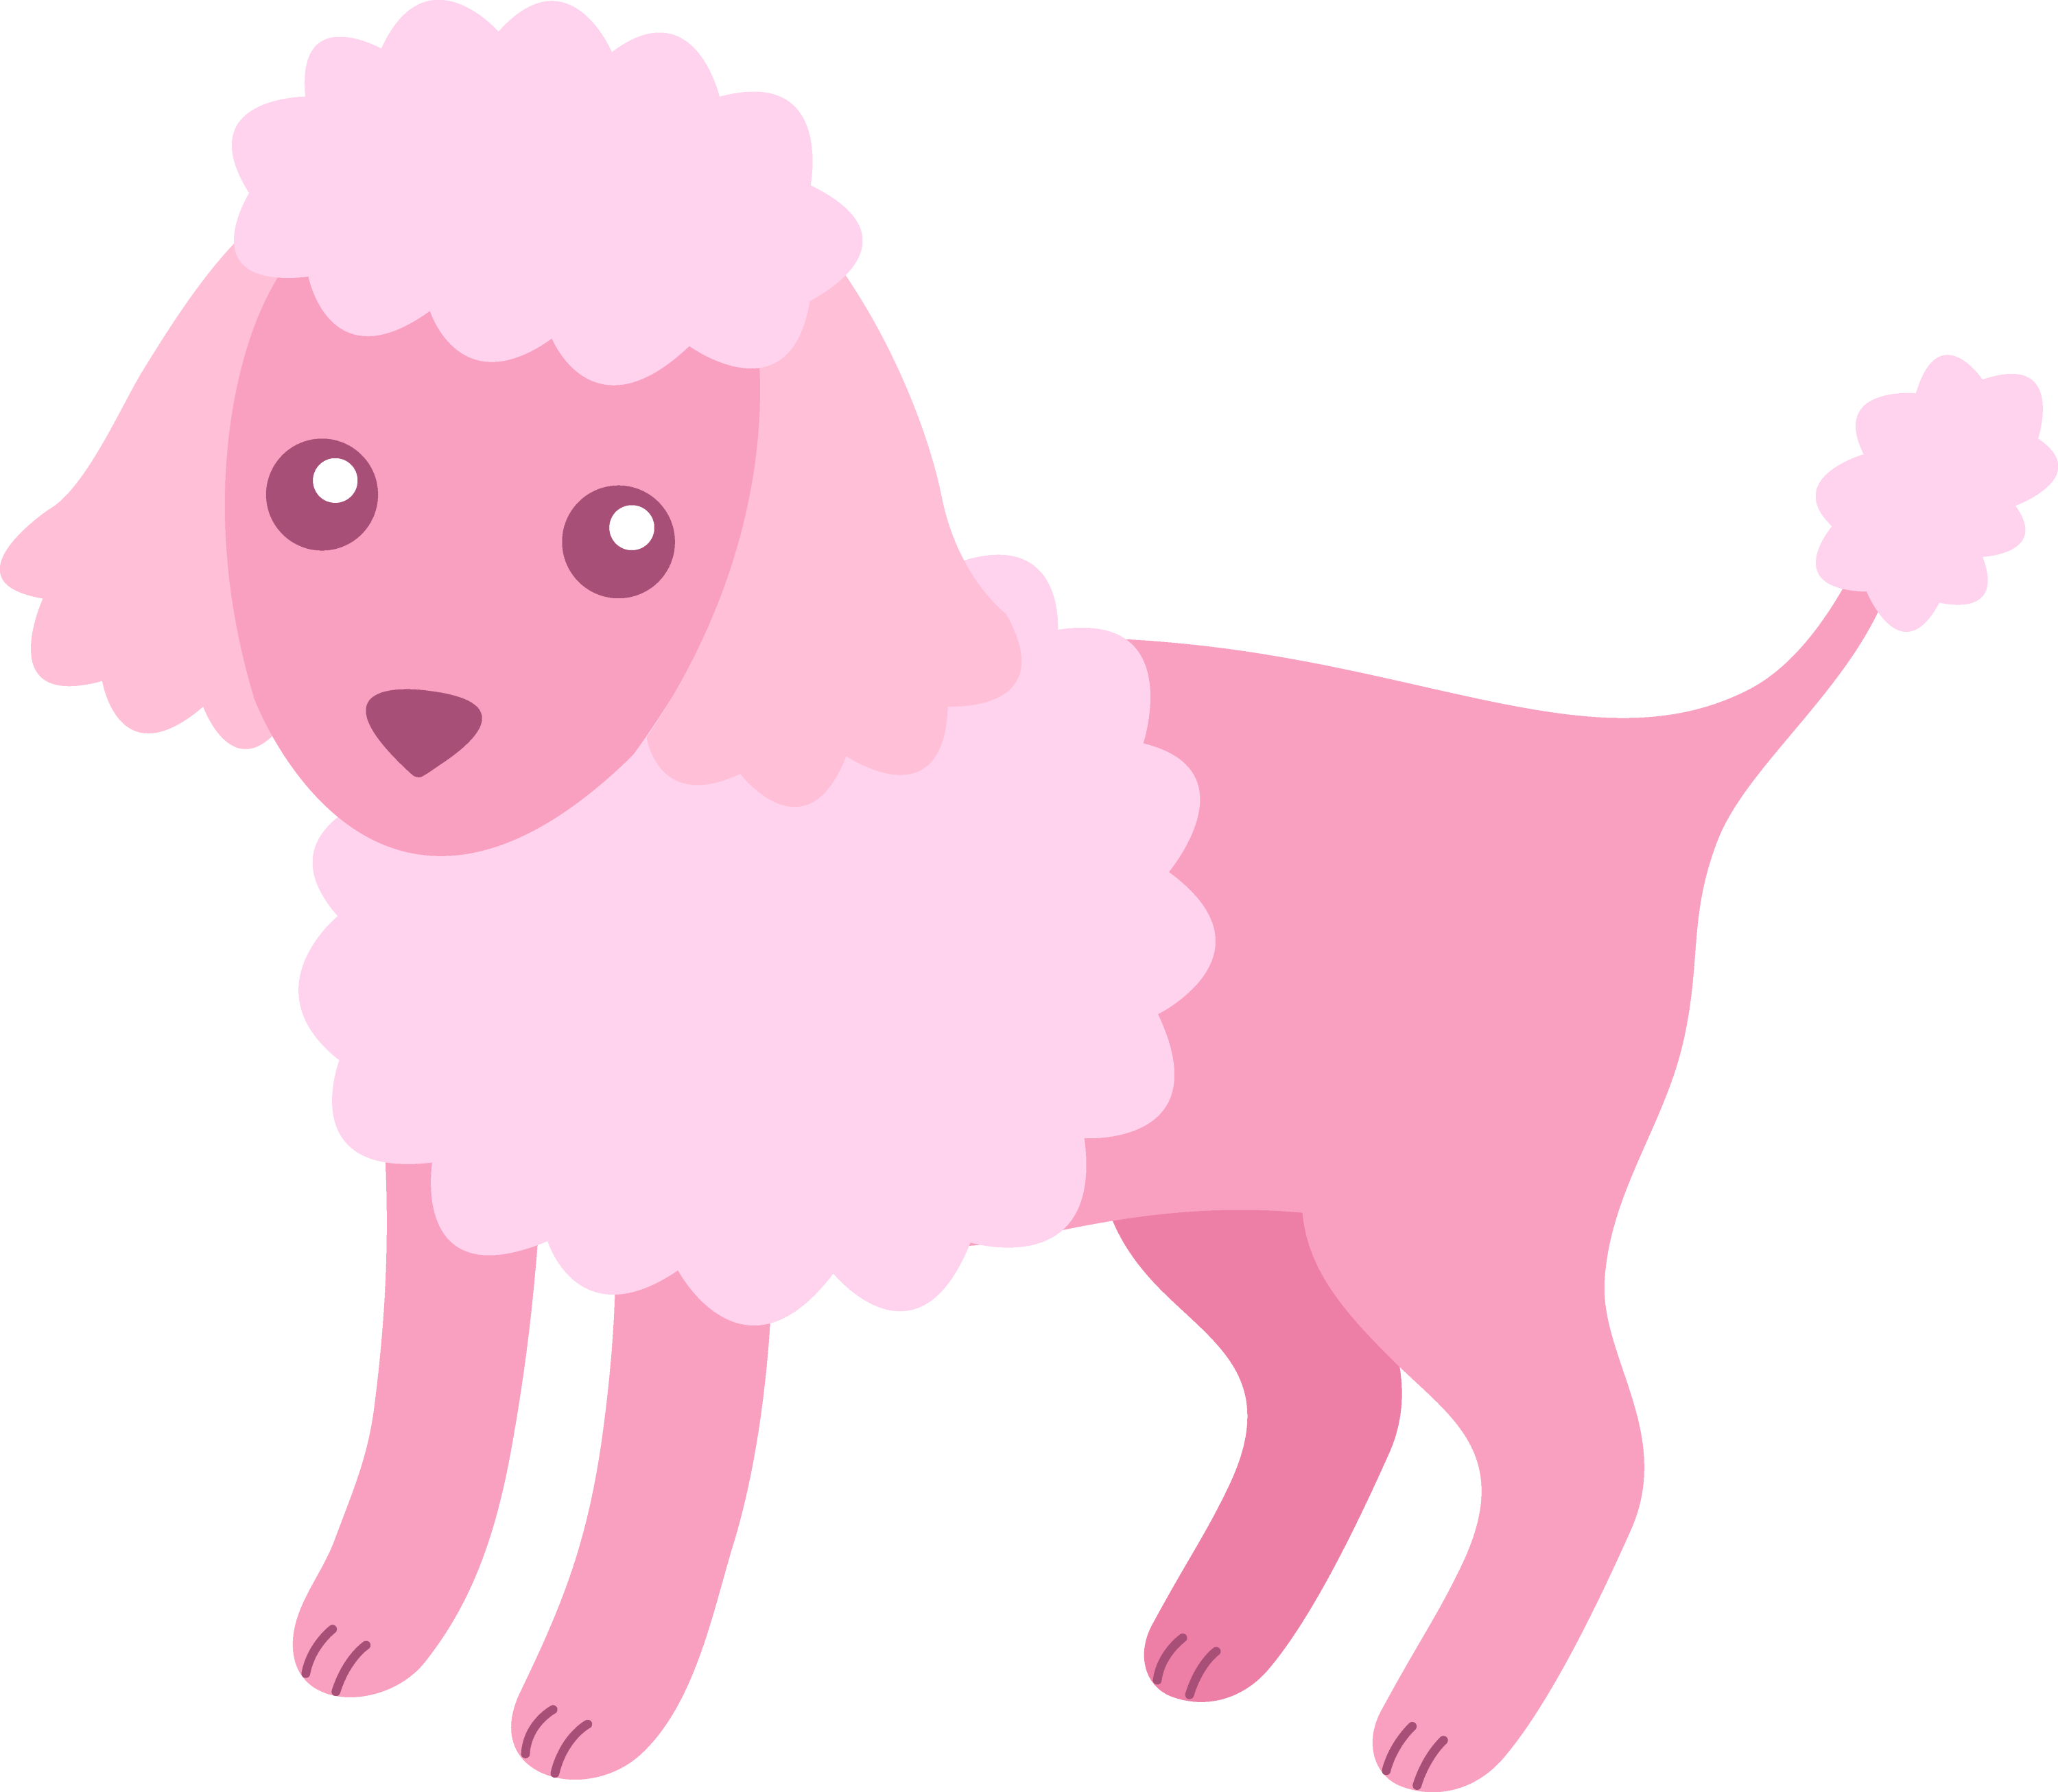 cute fluffy pink poodle free clip art rh sweetclipart com poodle skirt dog clipart White Poodle Clip Art